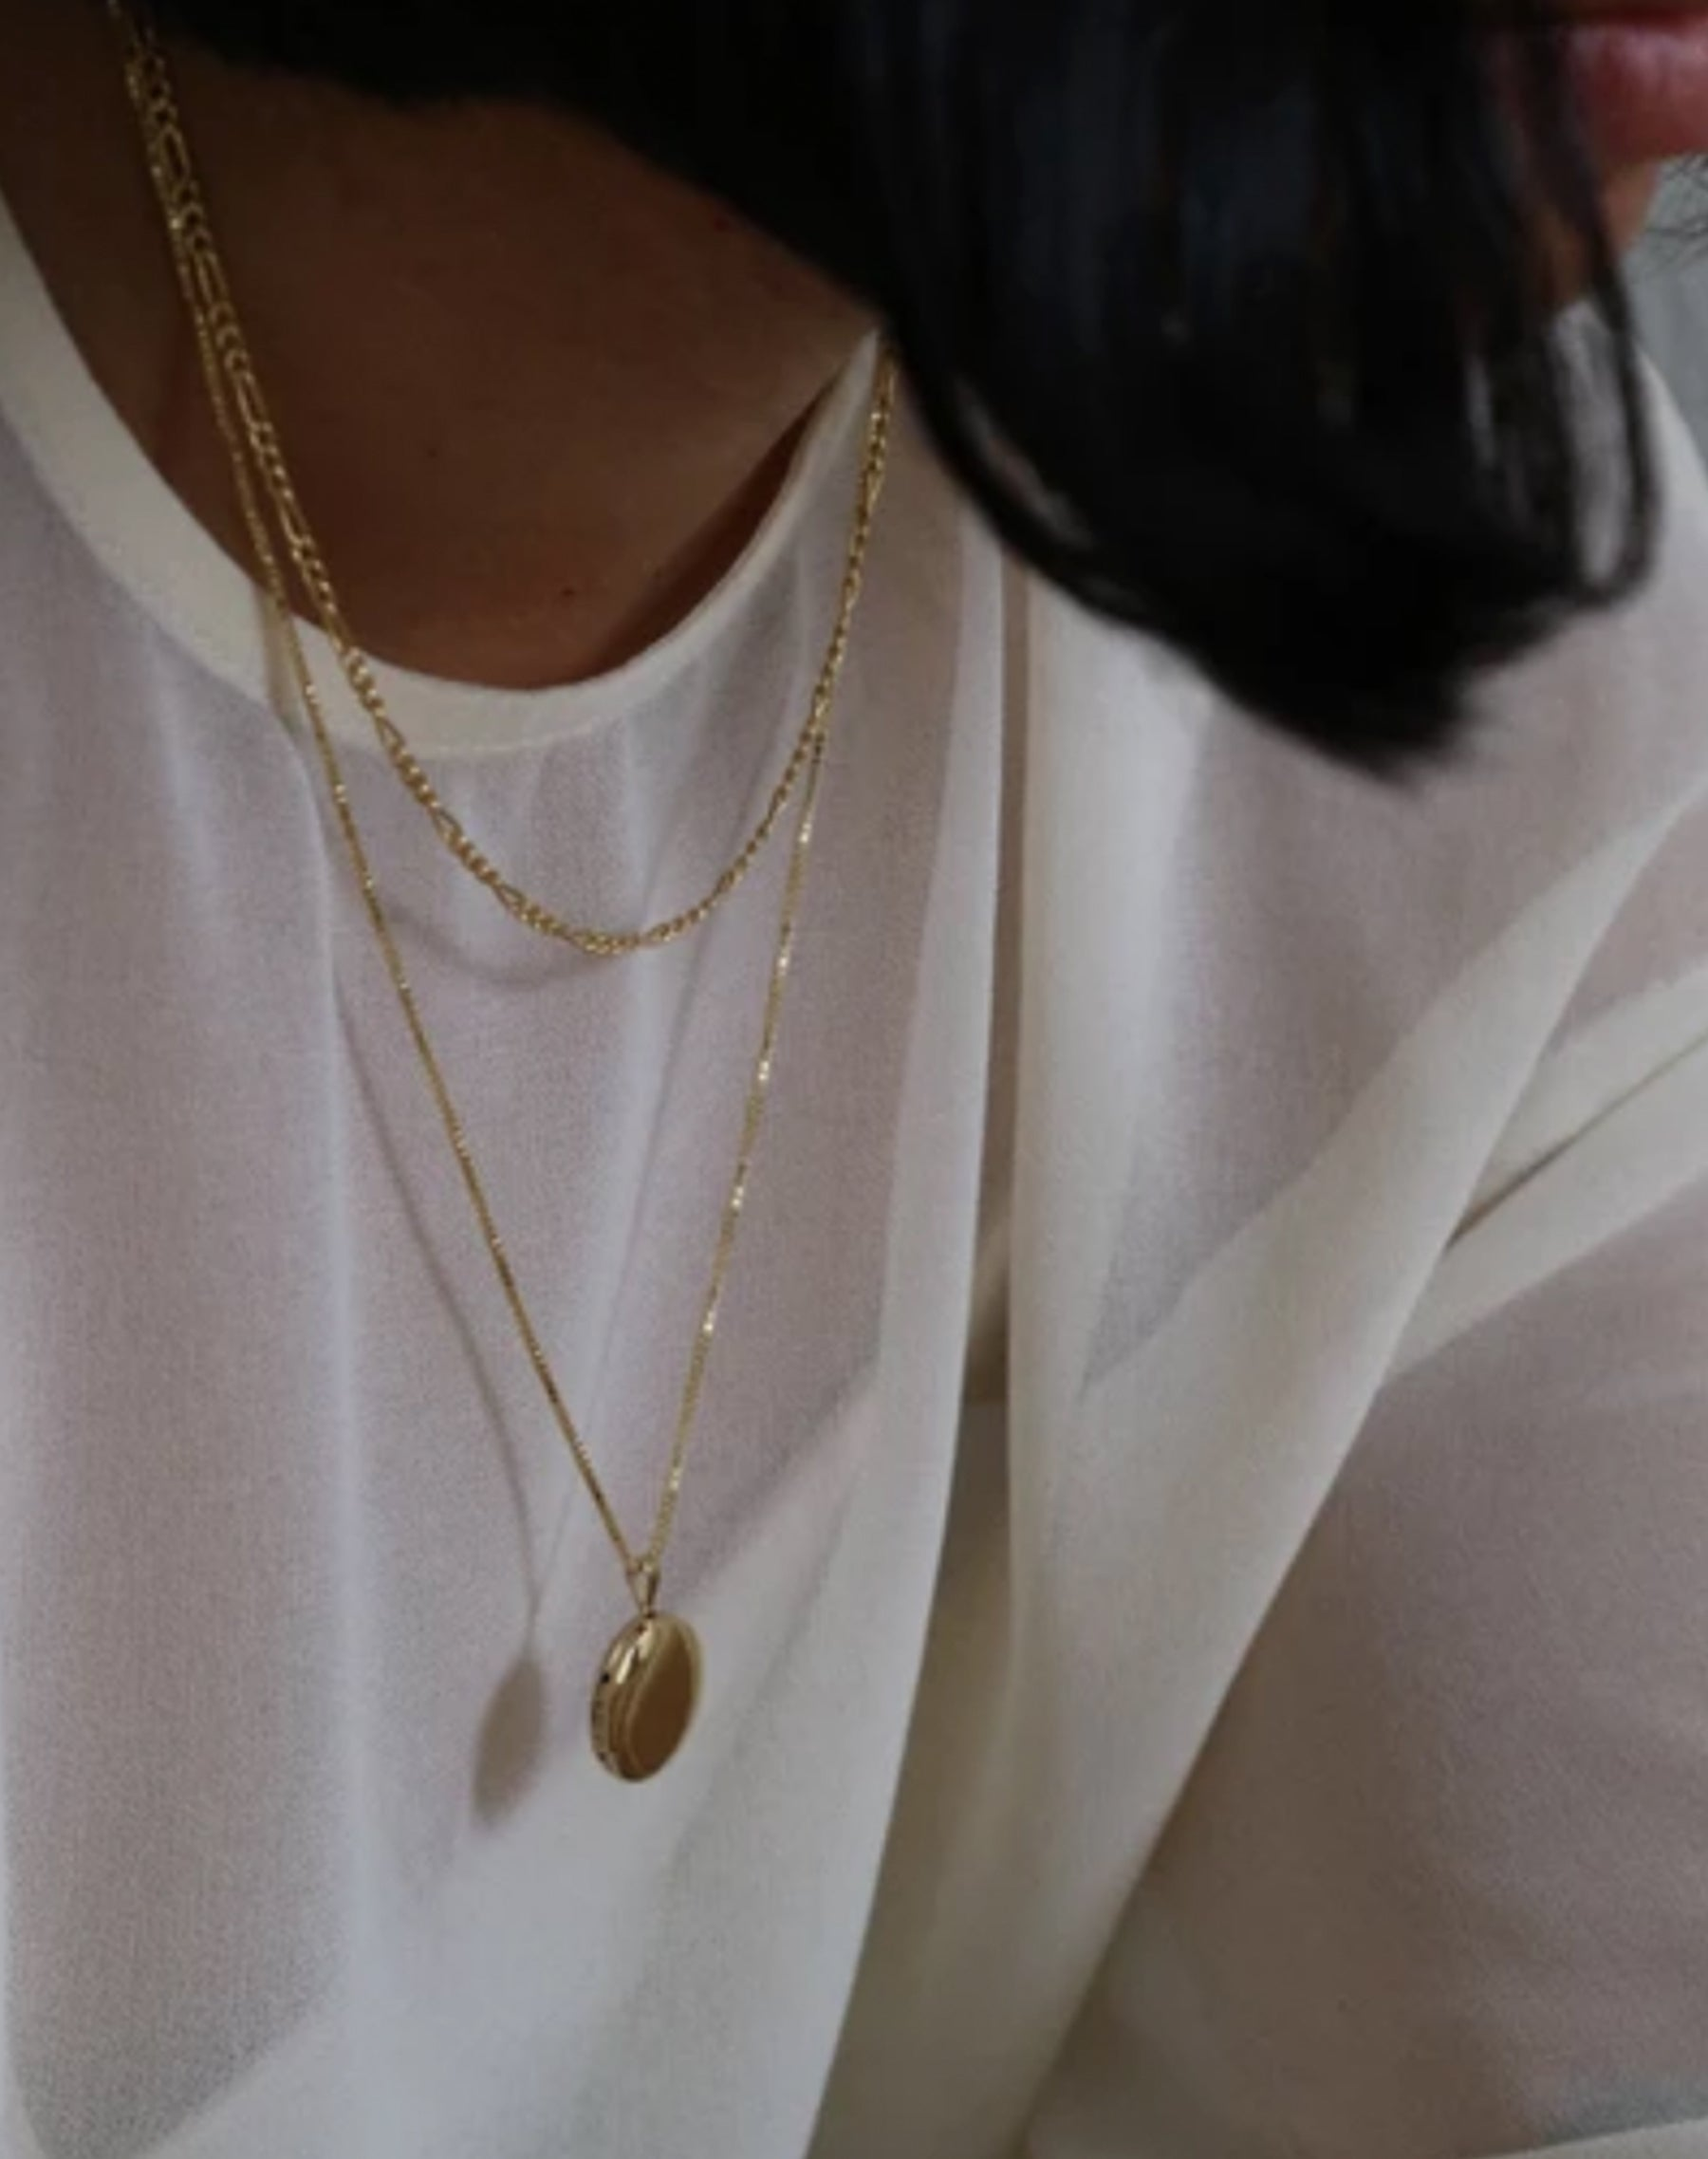 Second image of a model wearing the Round Locket in gold by Lisbeth.